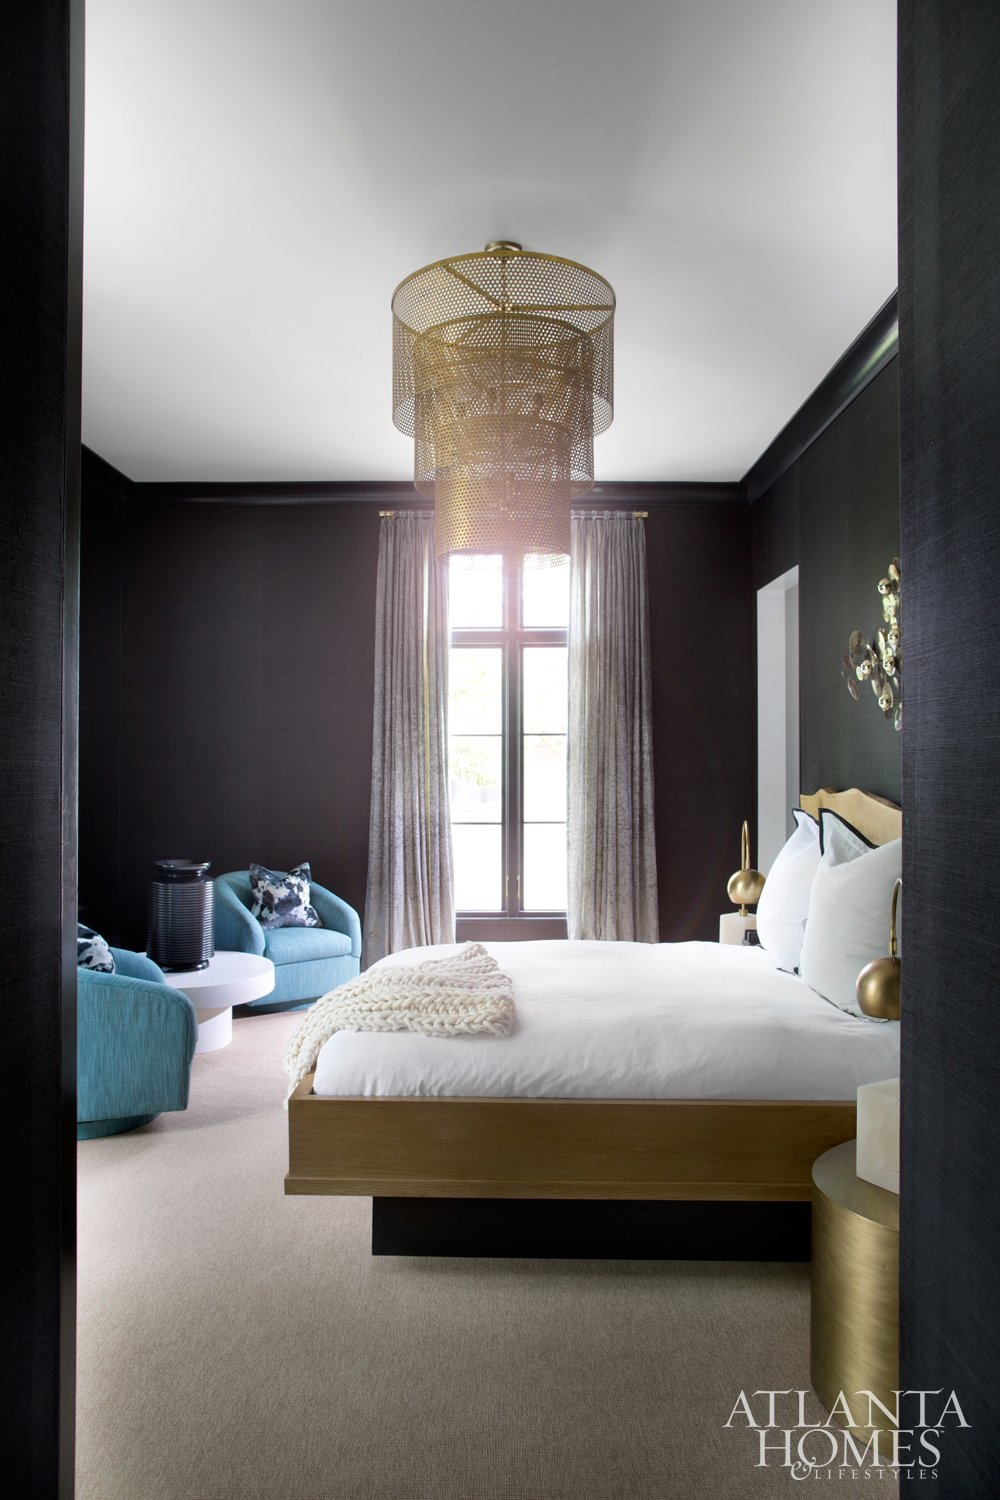 Modern bedroom with black walls and aqua mid-century chairs and gold chandelier.